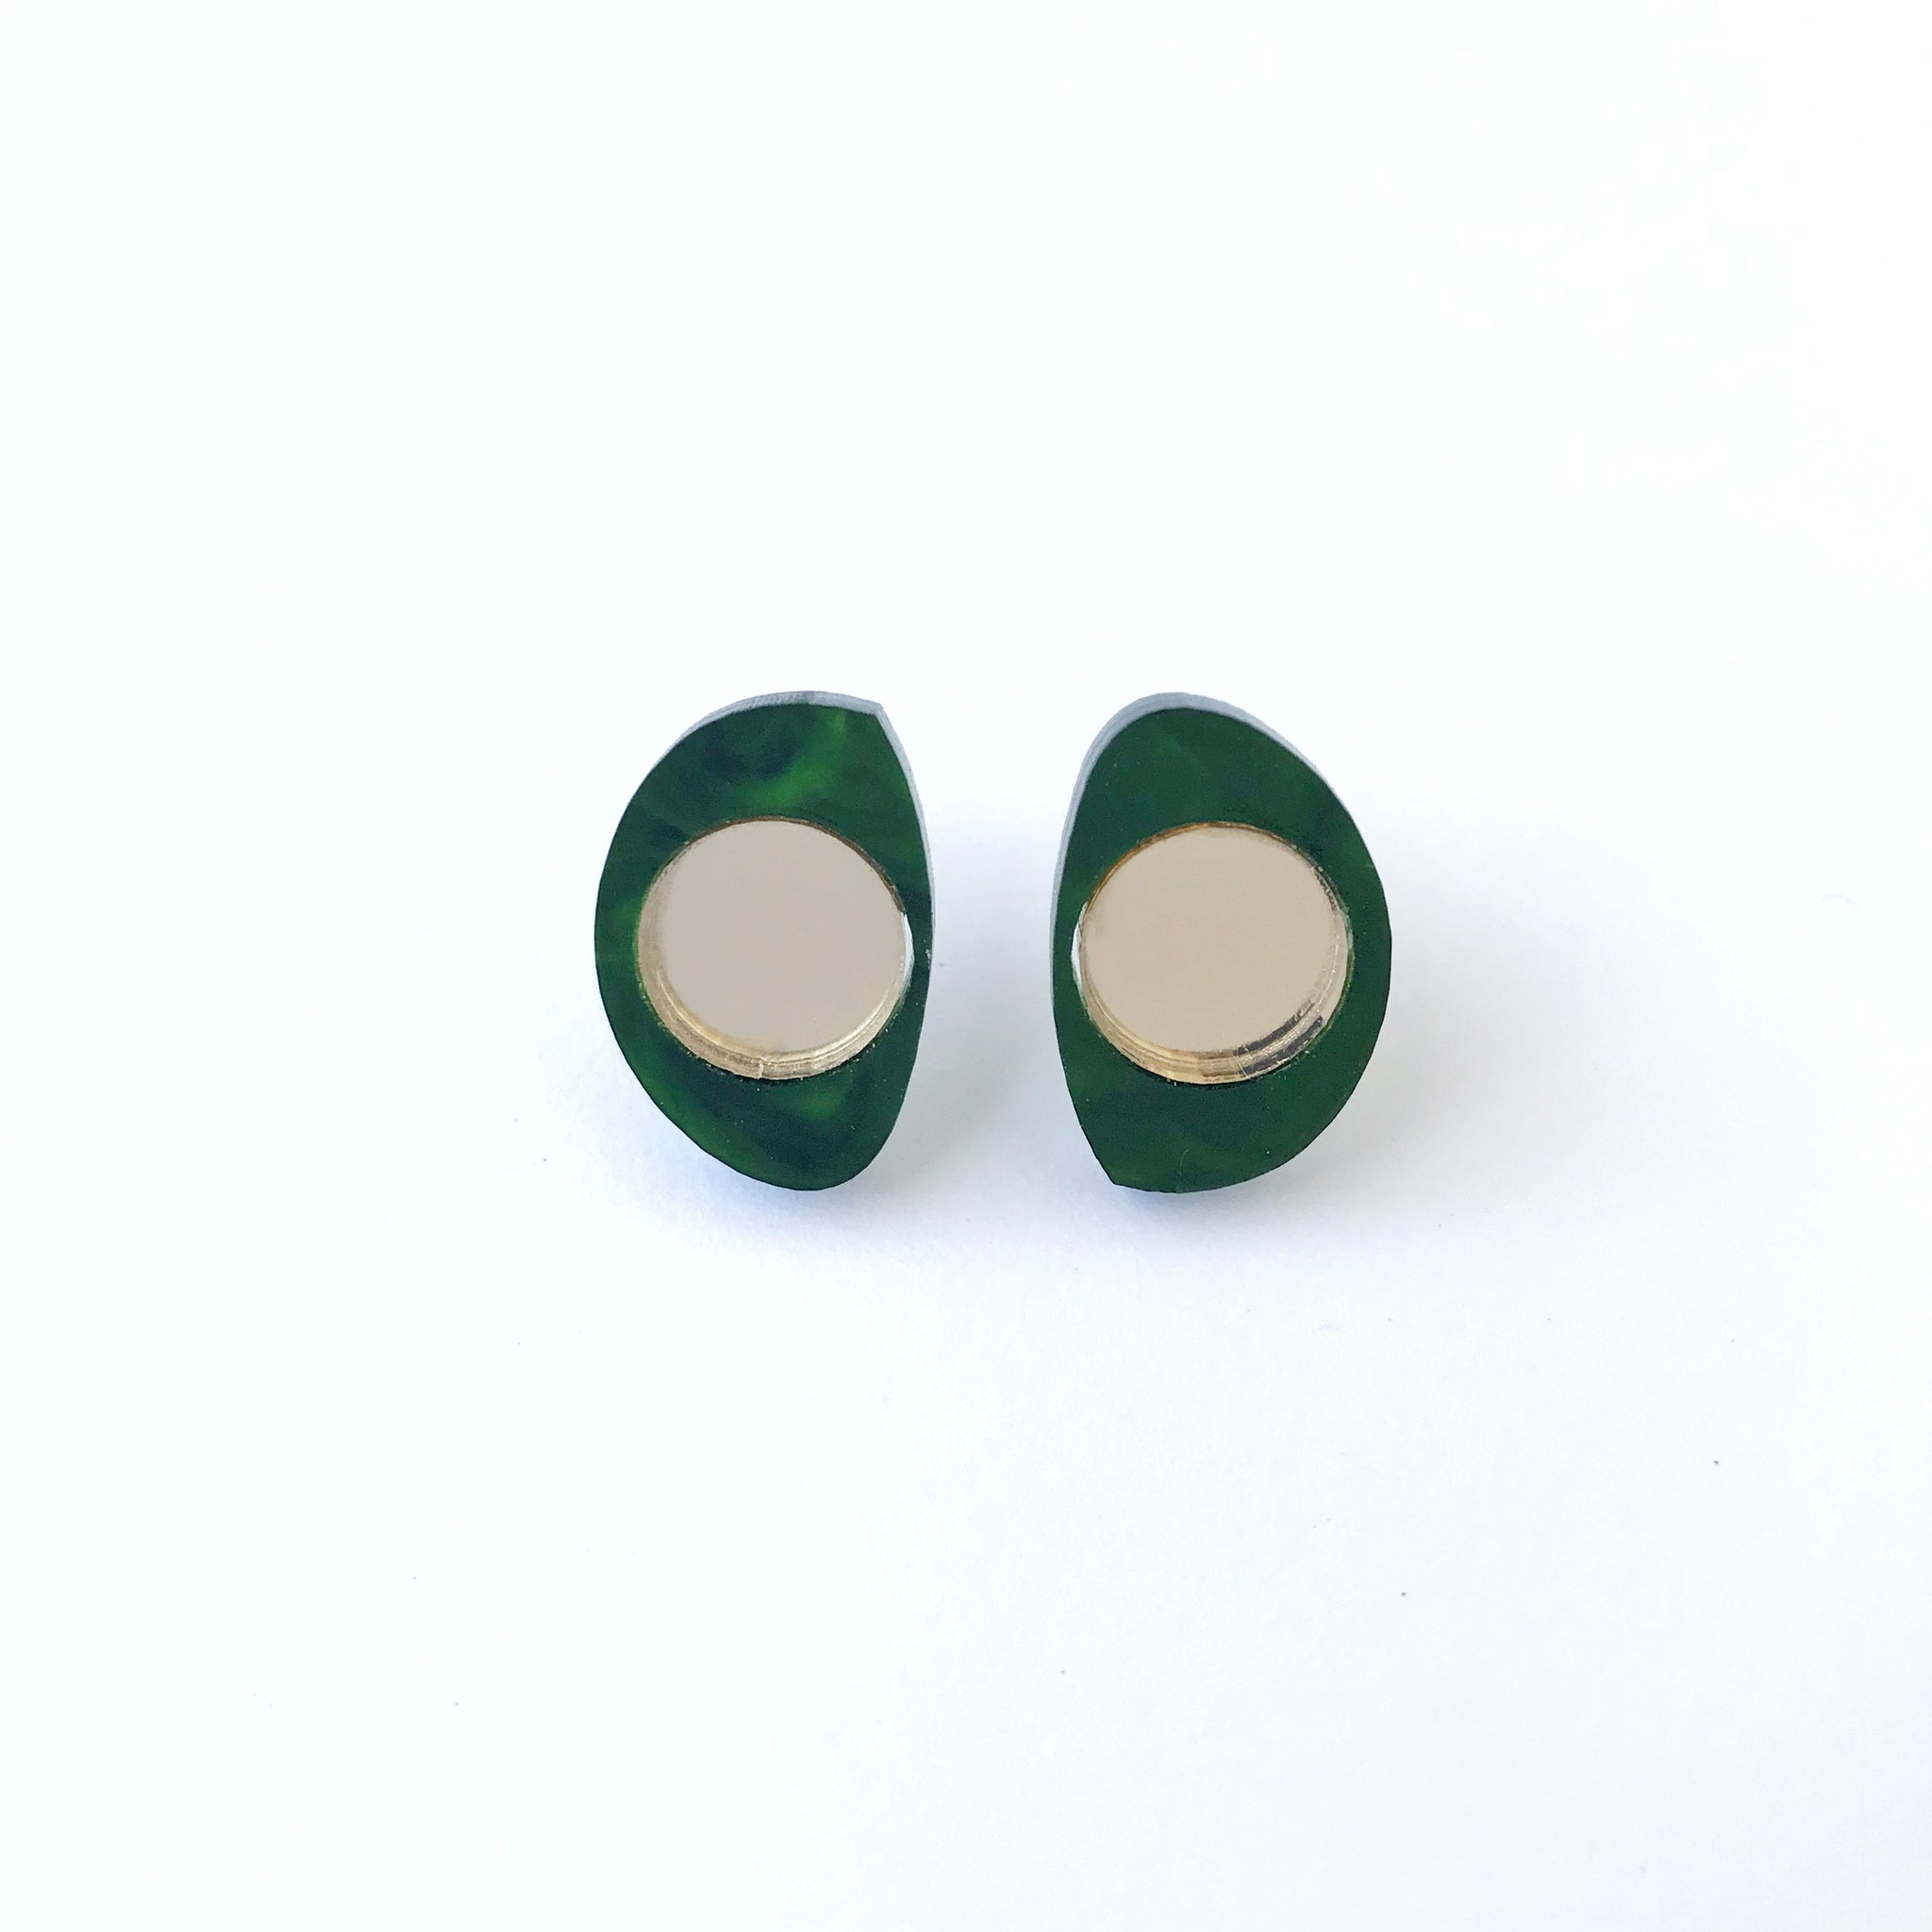 Two Tone Stud Earrings Marbled Green and Gold - Mikmat Designs Earrings Laser Cut Designs